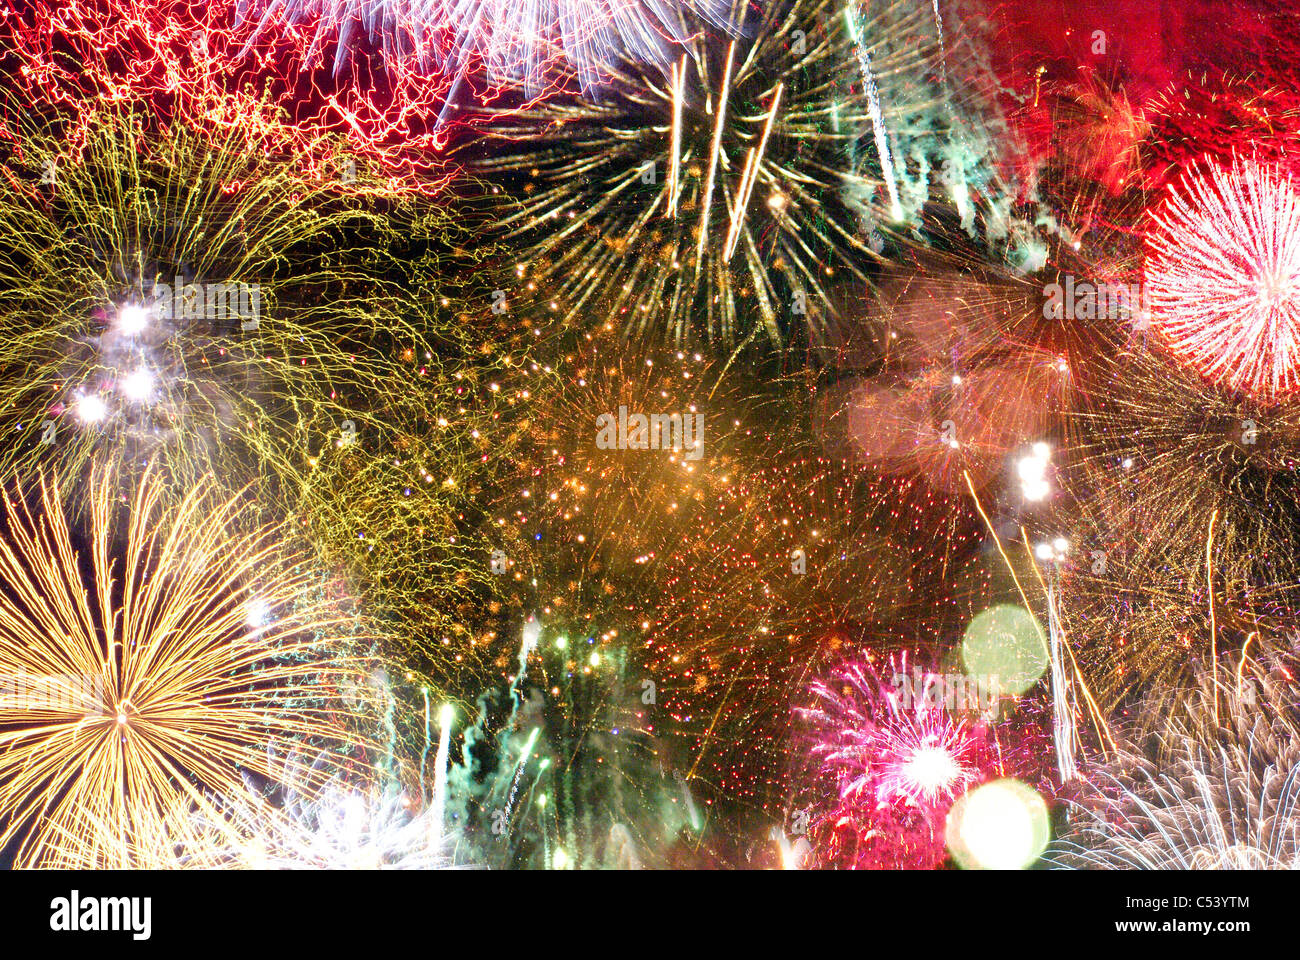 Background type image showing many bursts of fireworks. - Stock Image